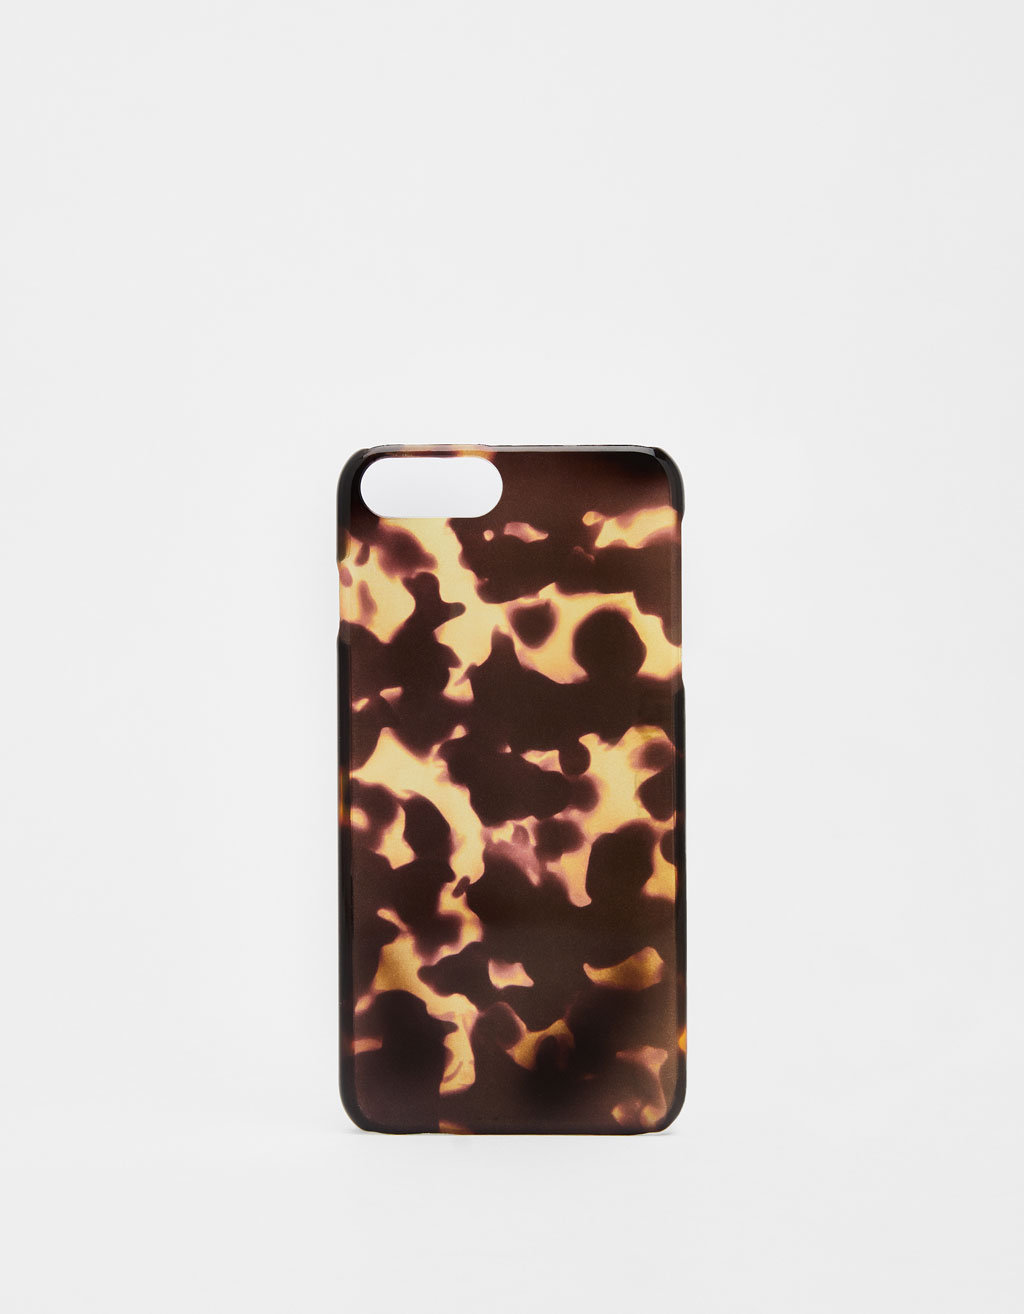 Carcasa efecto carey iPhone 6 plus / 7 plus / 8 plus